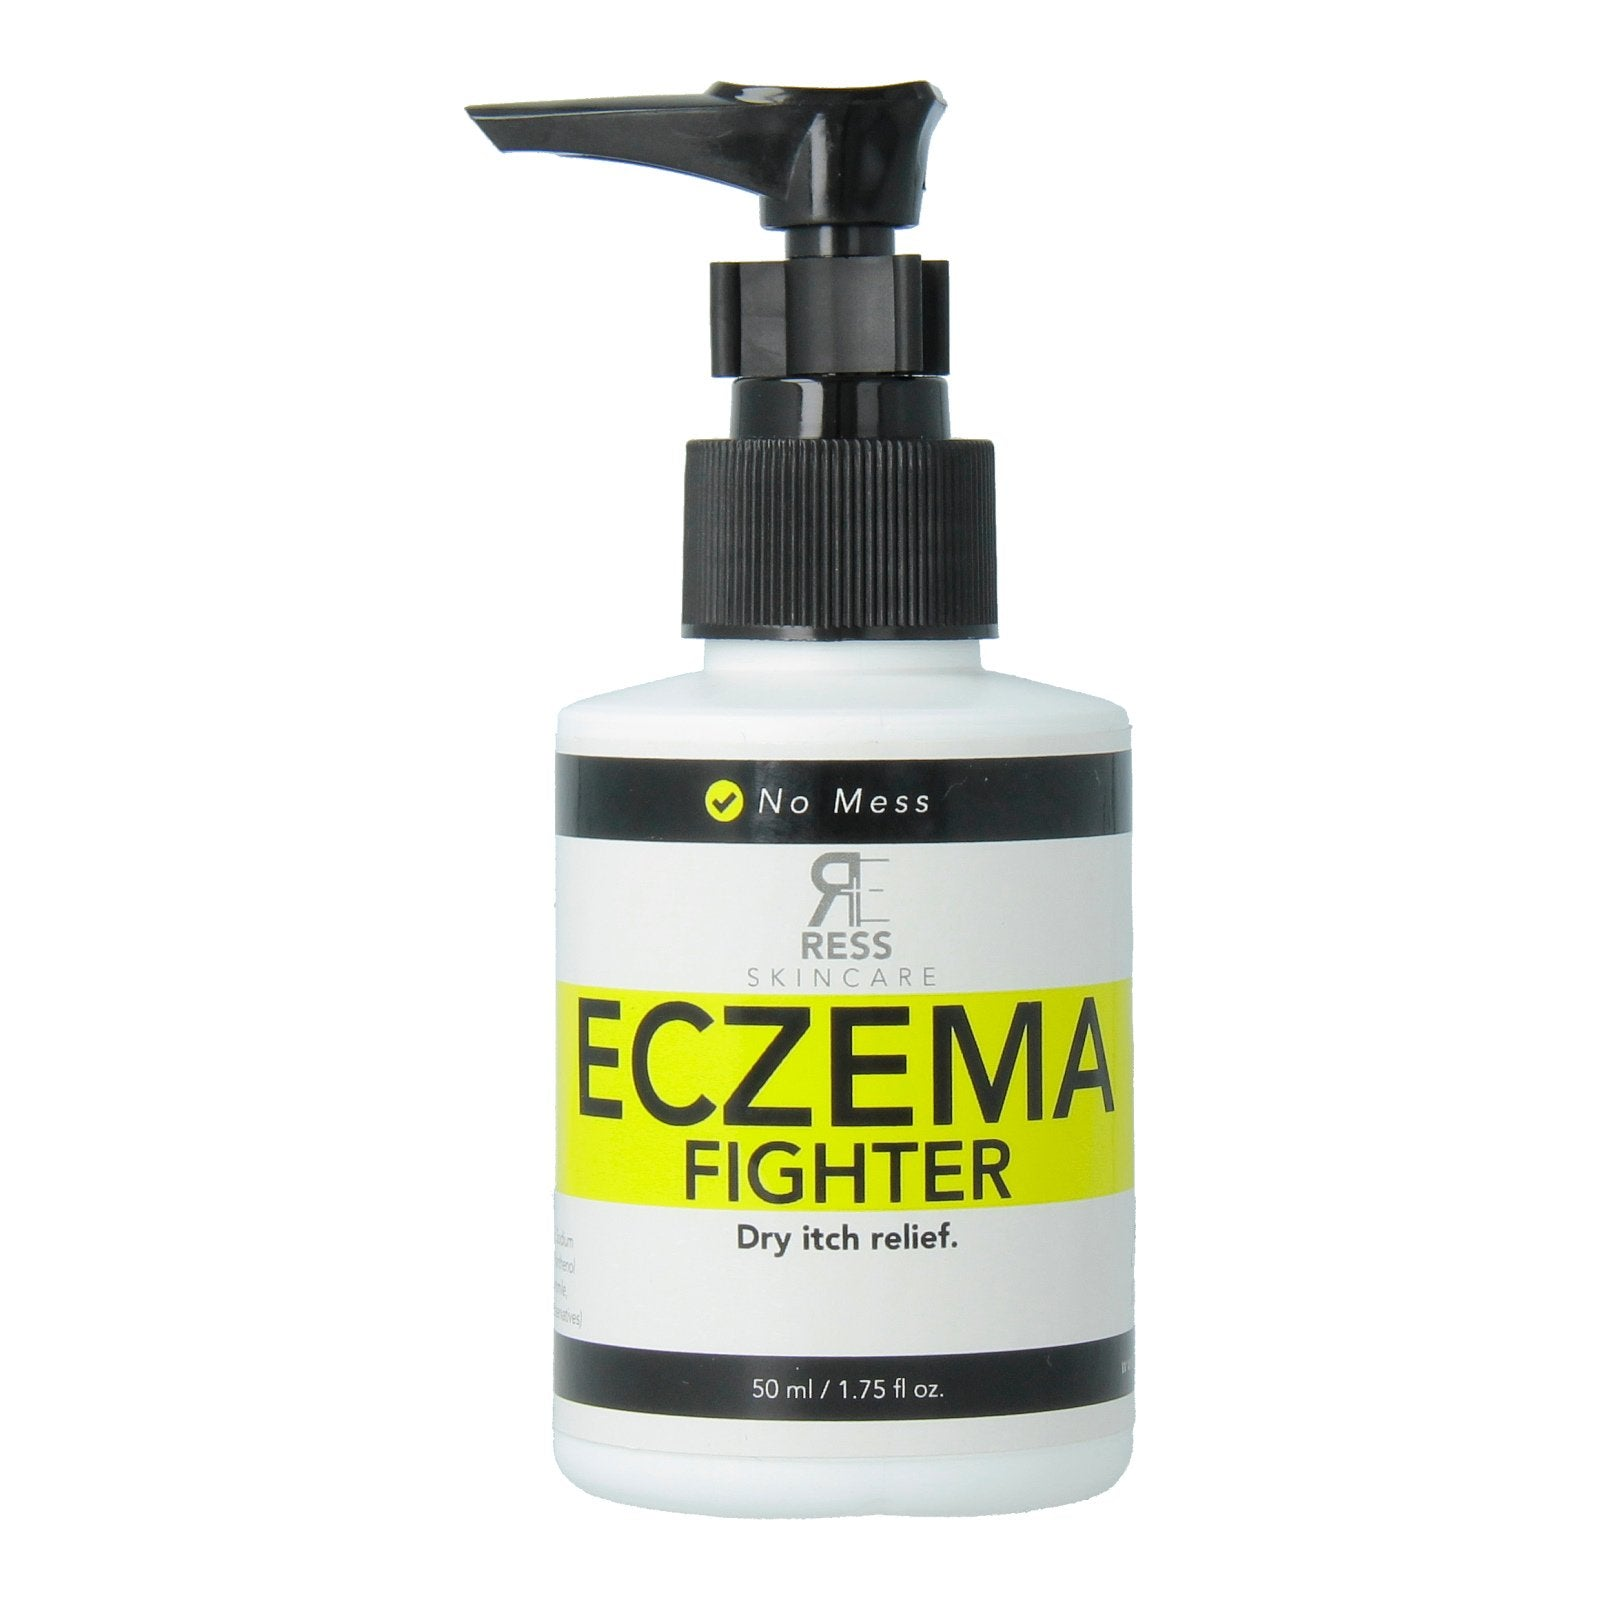 Eczema Fighter - Best for Day Usage (100ml)